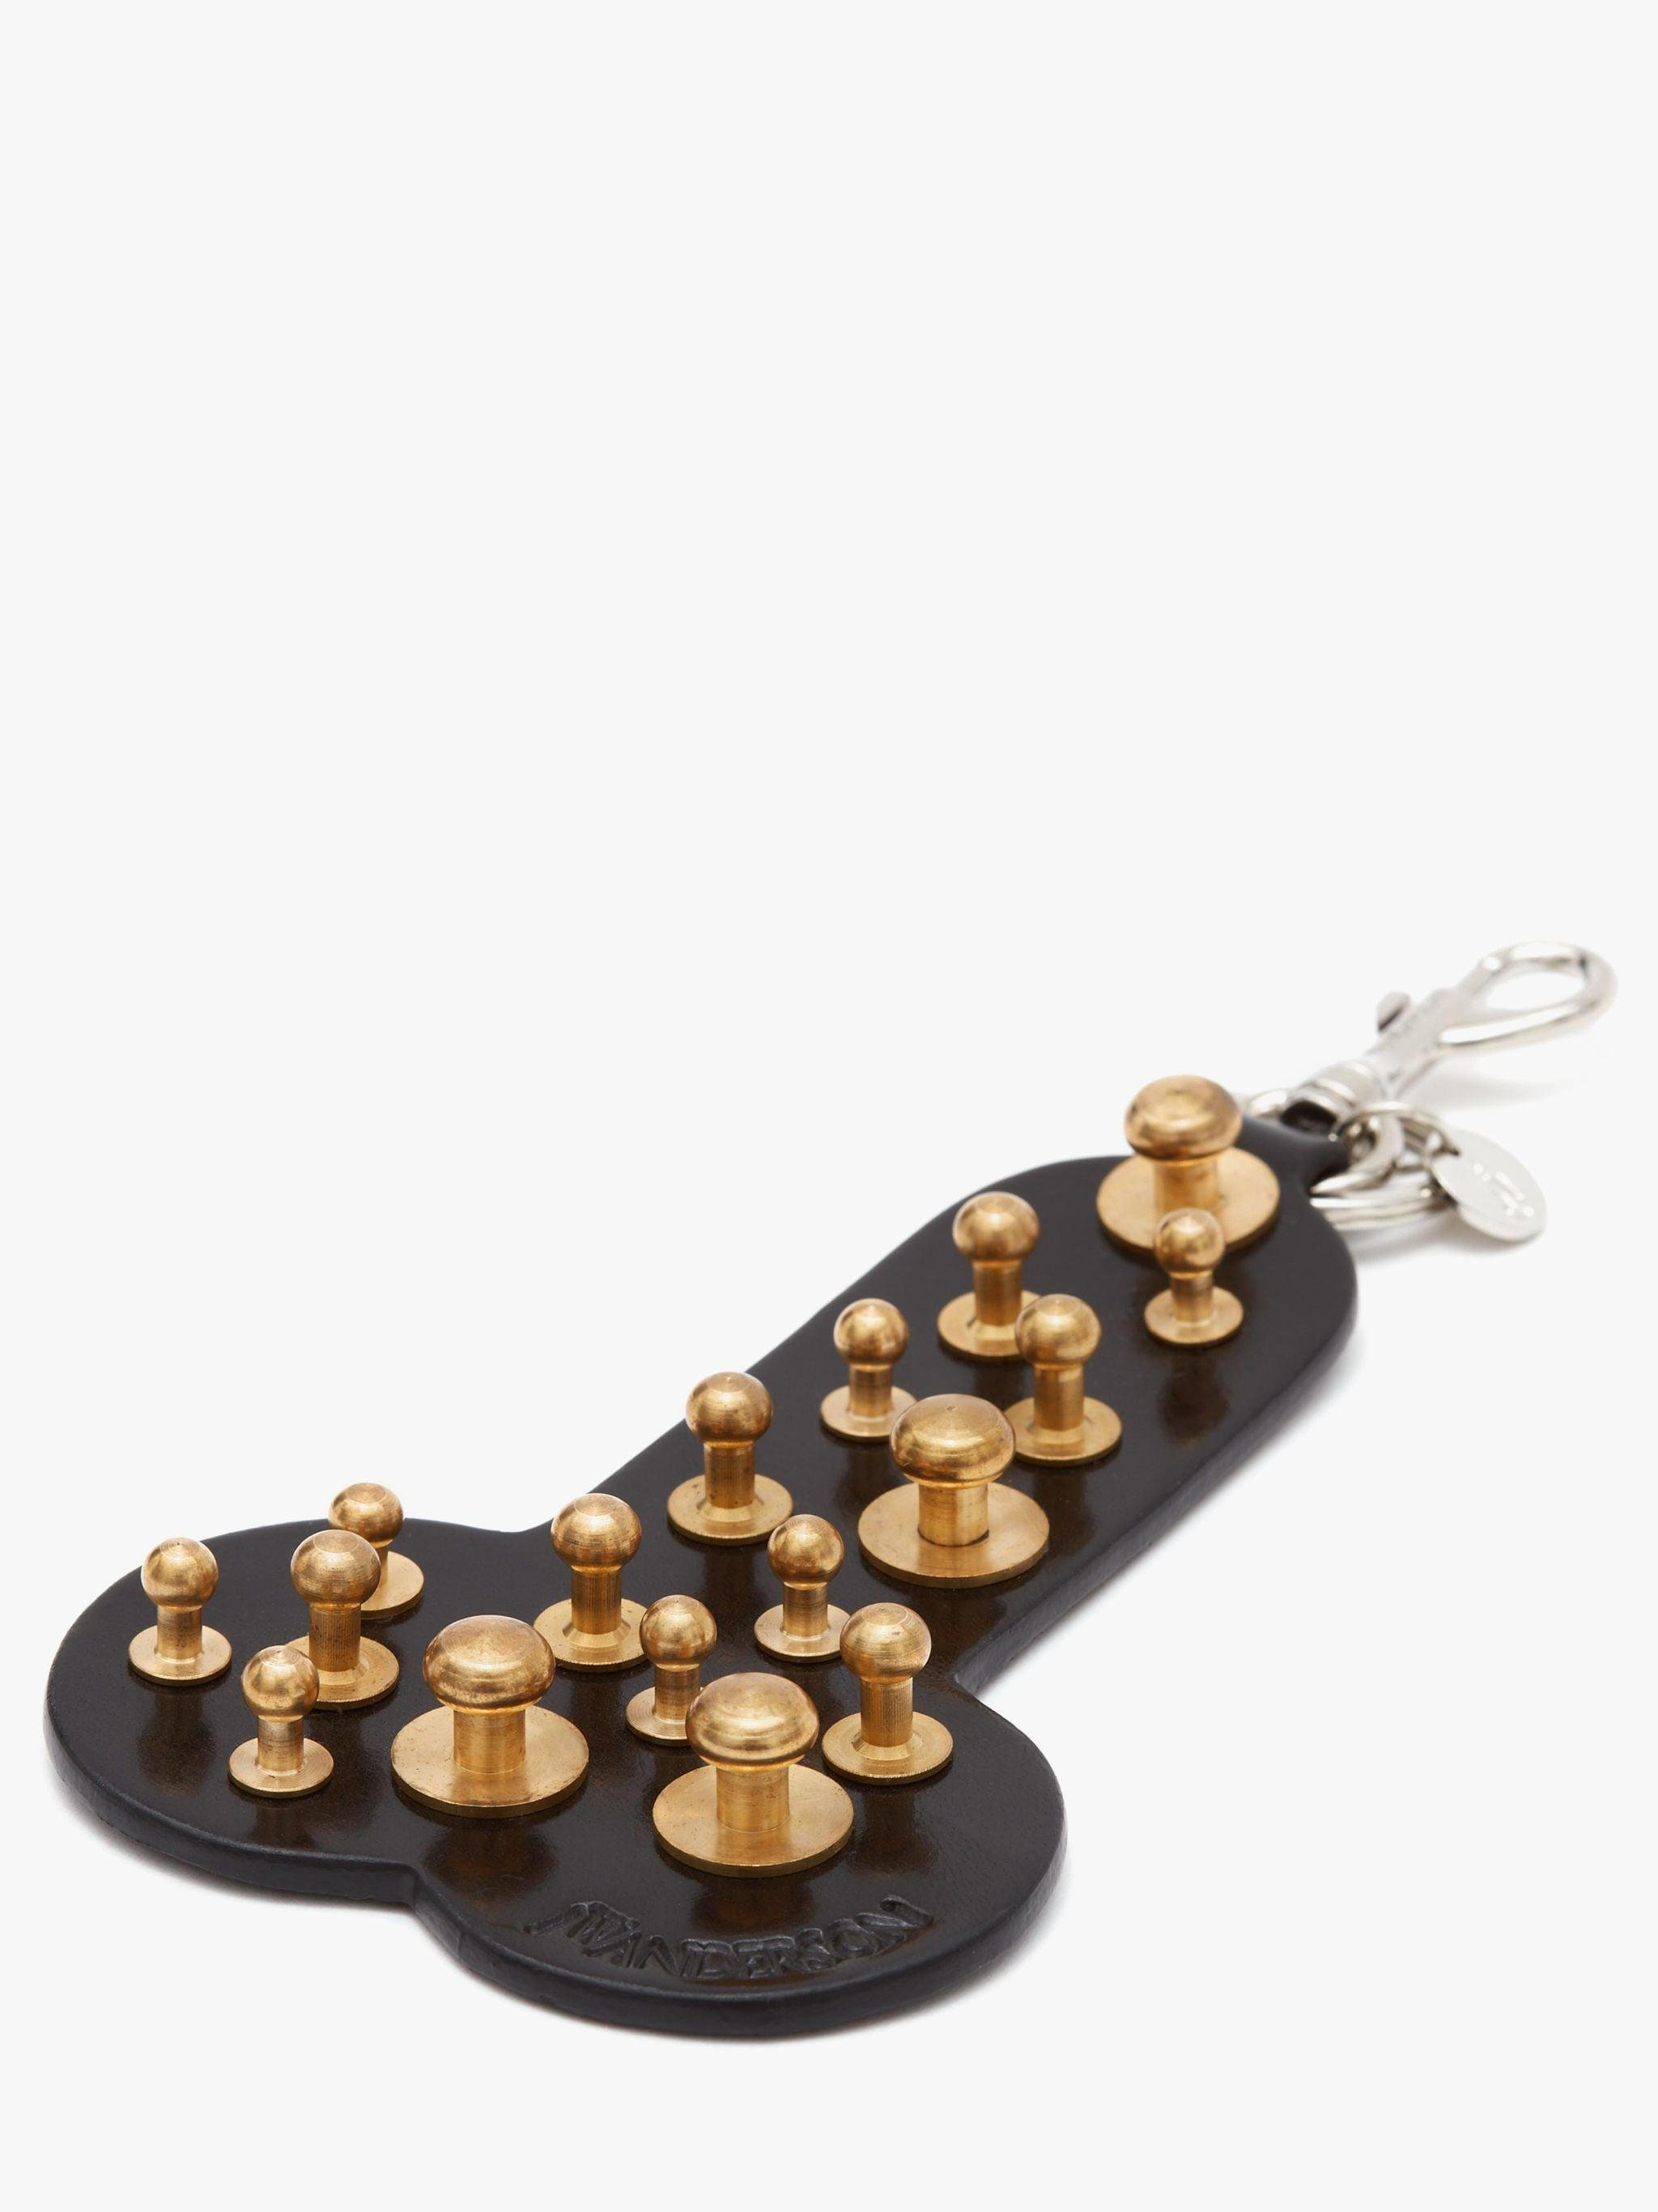 MADE IN BRITAIN: STUDDED PENIS KEYRING 2